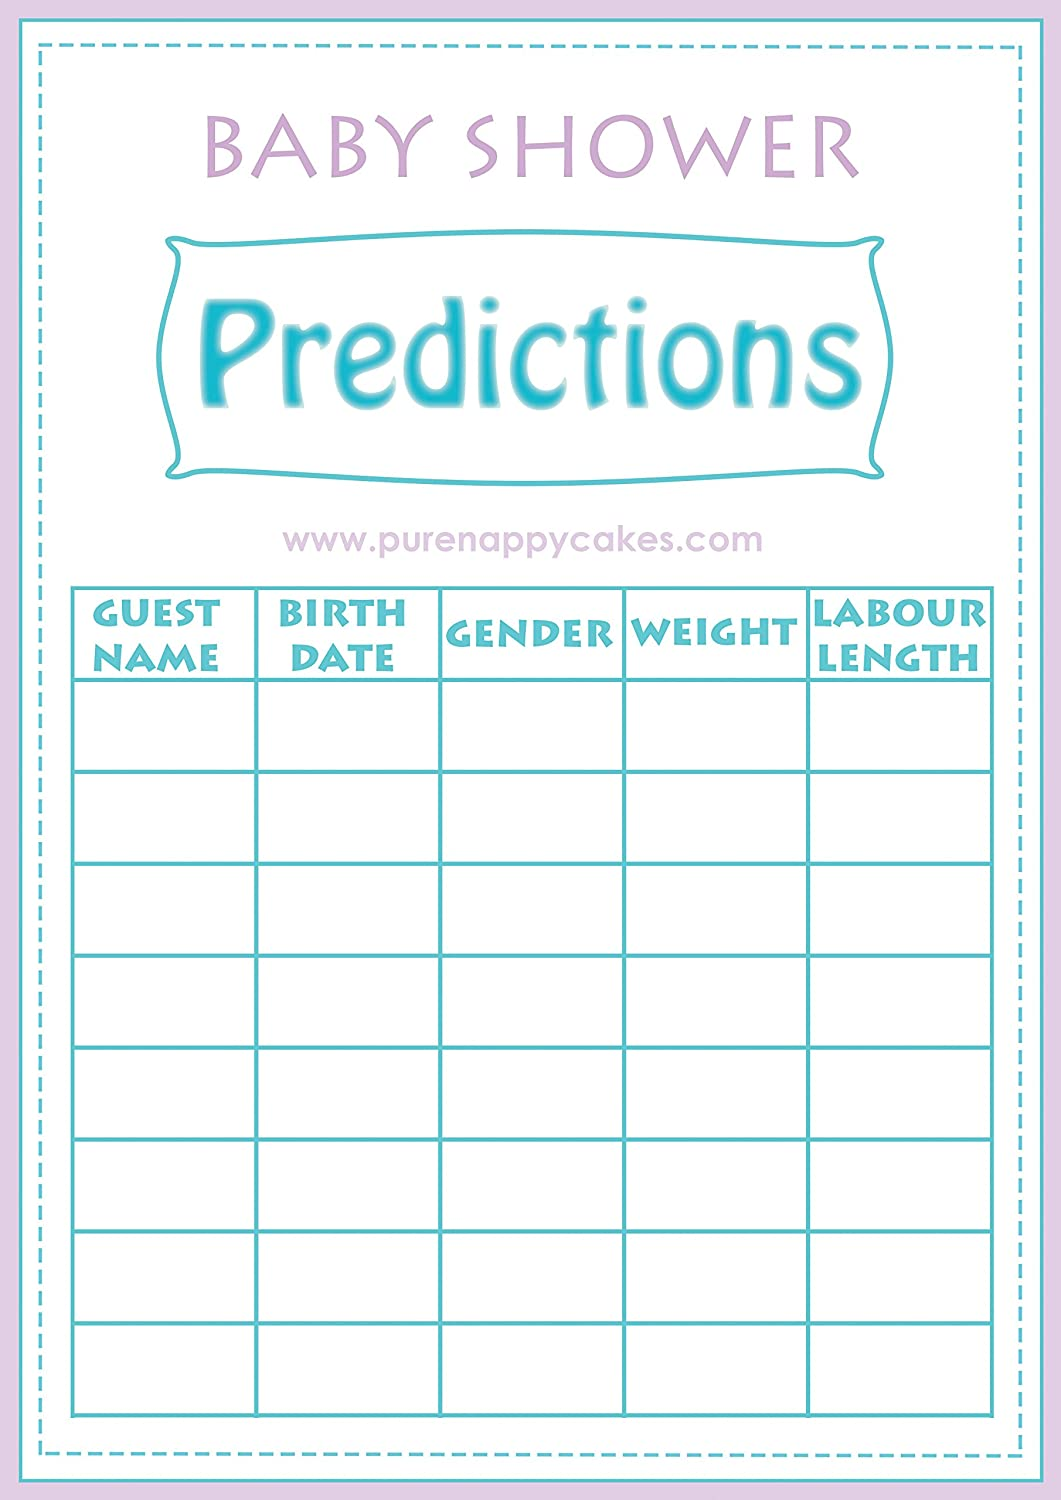 Wonderful Baby Shower Multiple Games Pack Including BINGO, Ice Breakers   Baby  Predictions U0026 Who Knows Mummy Best Game   Unisex   FREE DELIVERY:  Amazon.co.uk: Toys U0026 ...